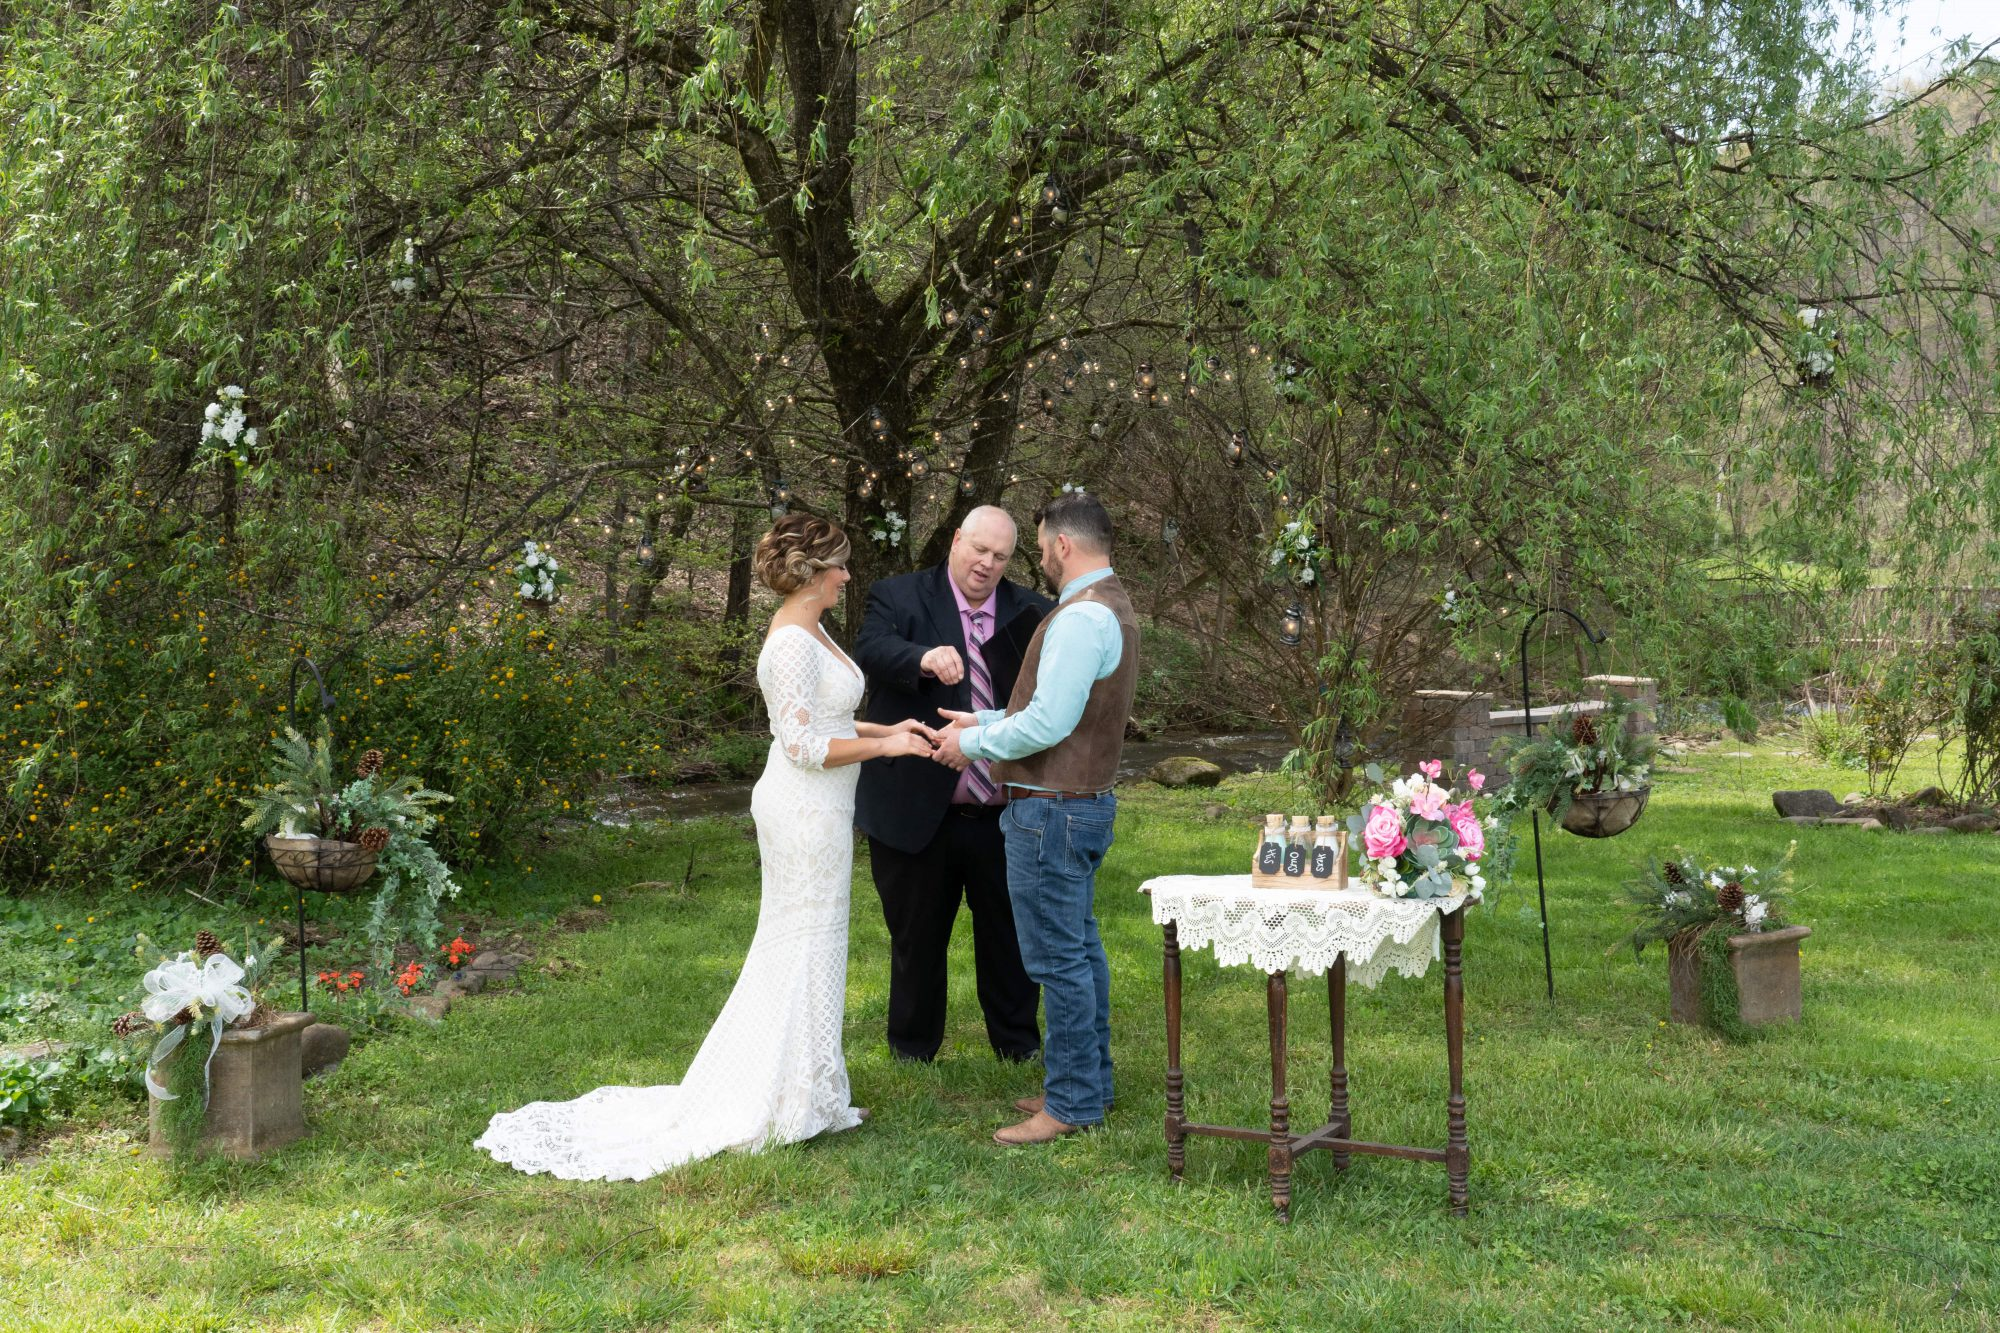 Willow-tree-ceremony-April-Honeysuckle-Hills-1002 (1)-min